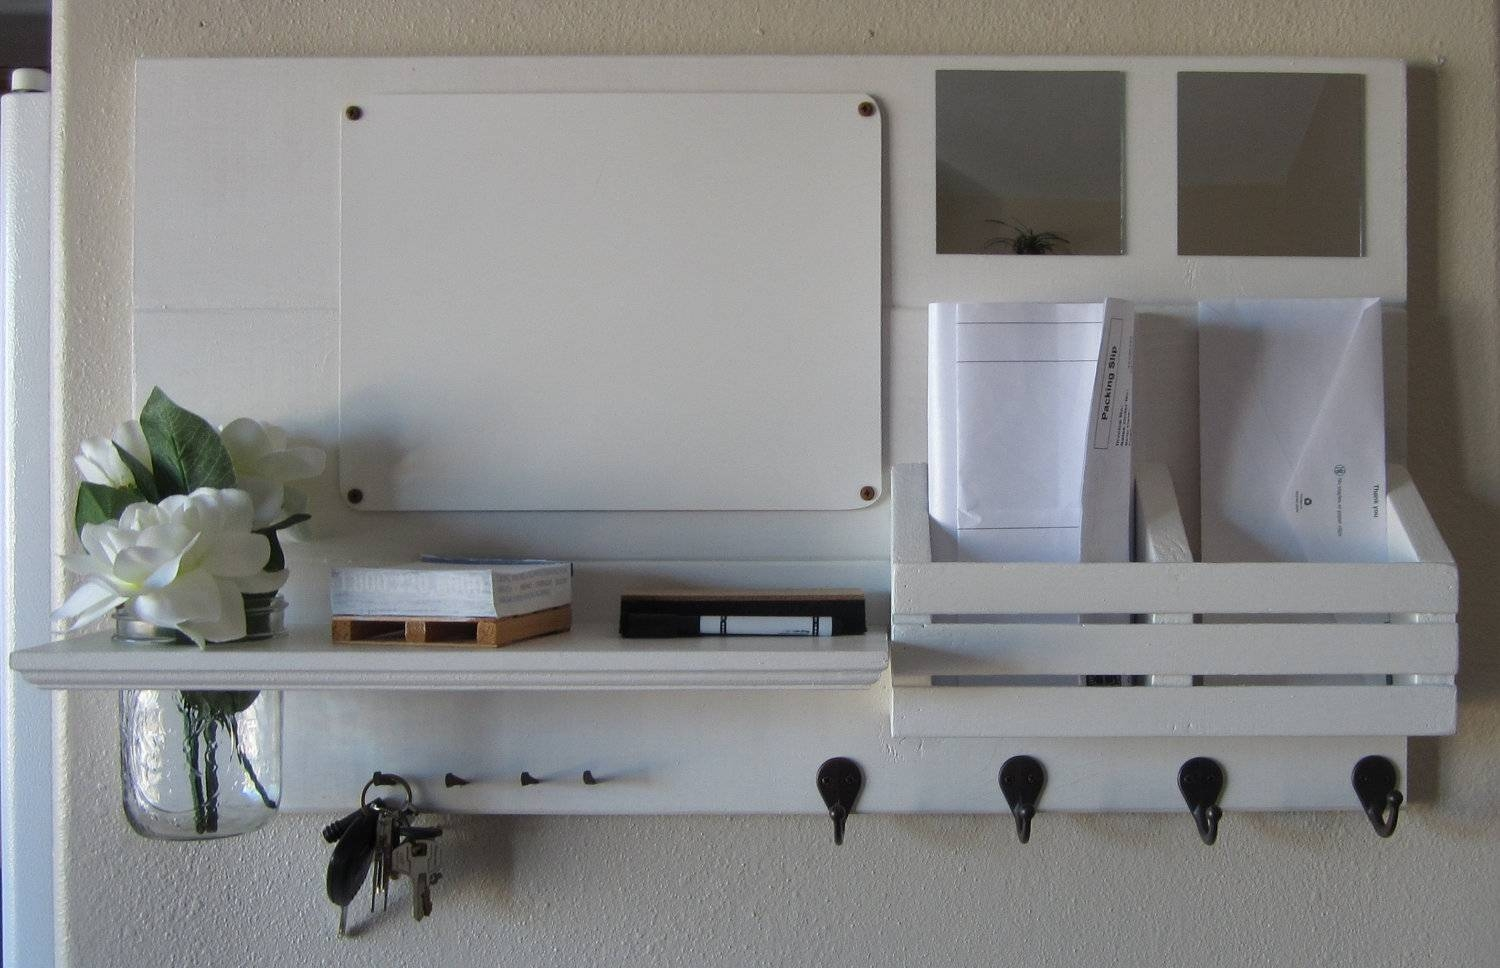 Shabby Chic Whitewashed Reclaimed Wood Shelf With Hooks For Hat with Shabby Chic Mirrors With Shelf (Image 13 of 15)